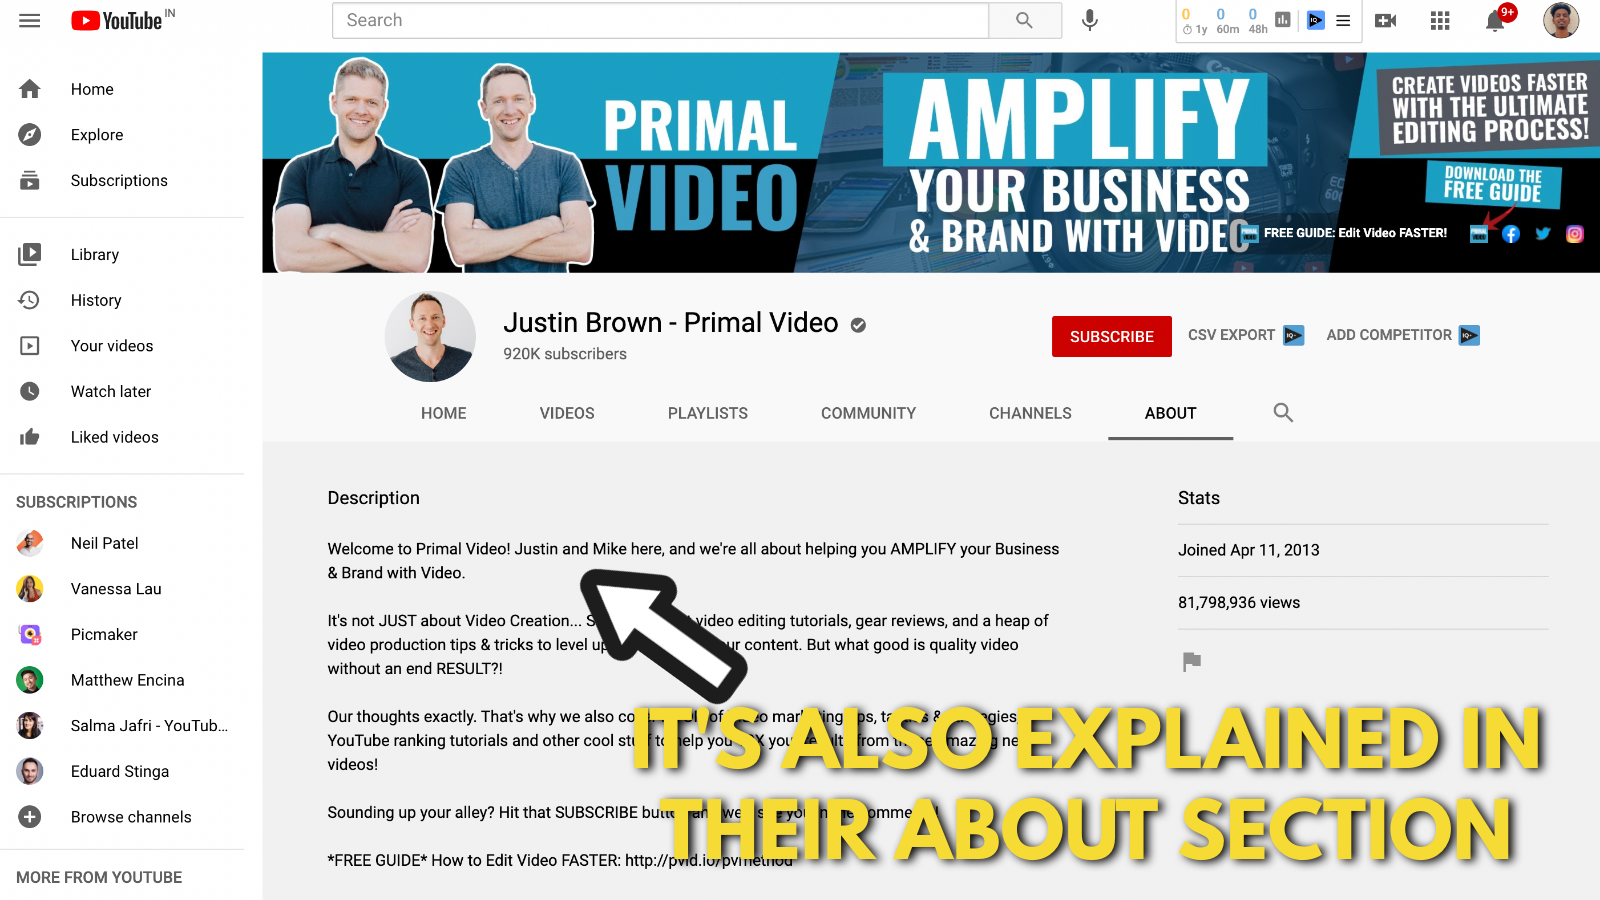 A screenshot of Primal video's YouTube channel 3